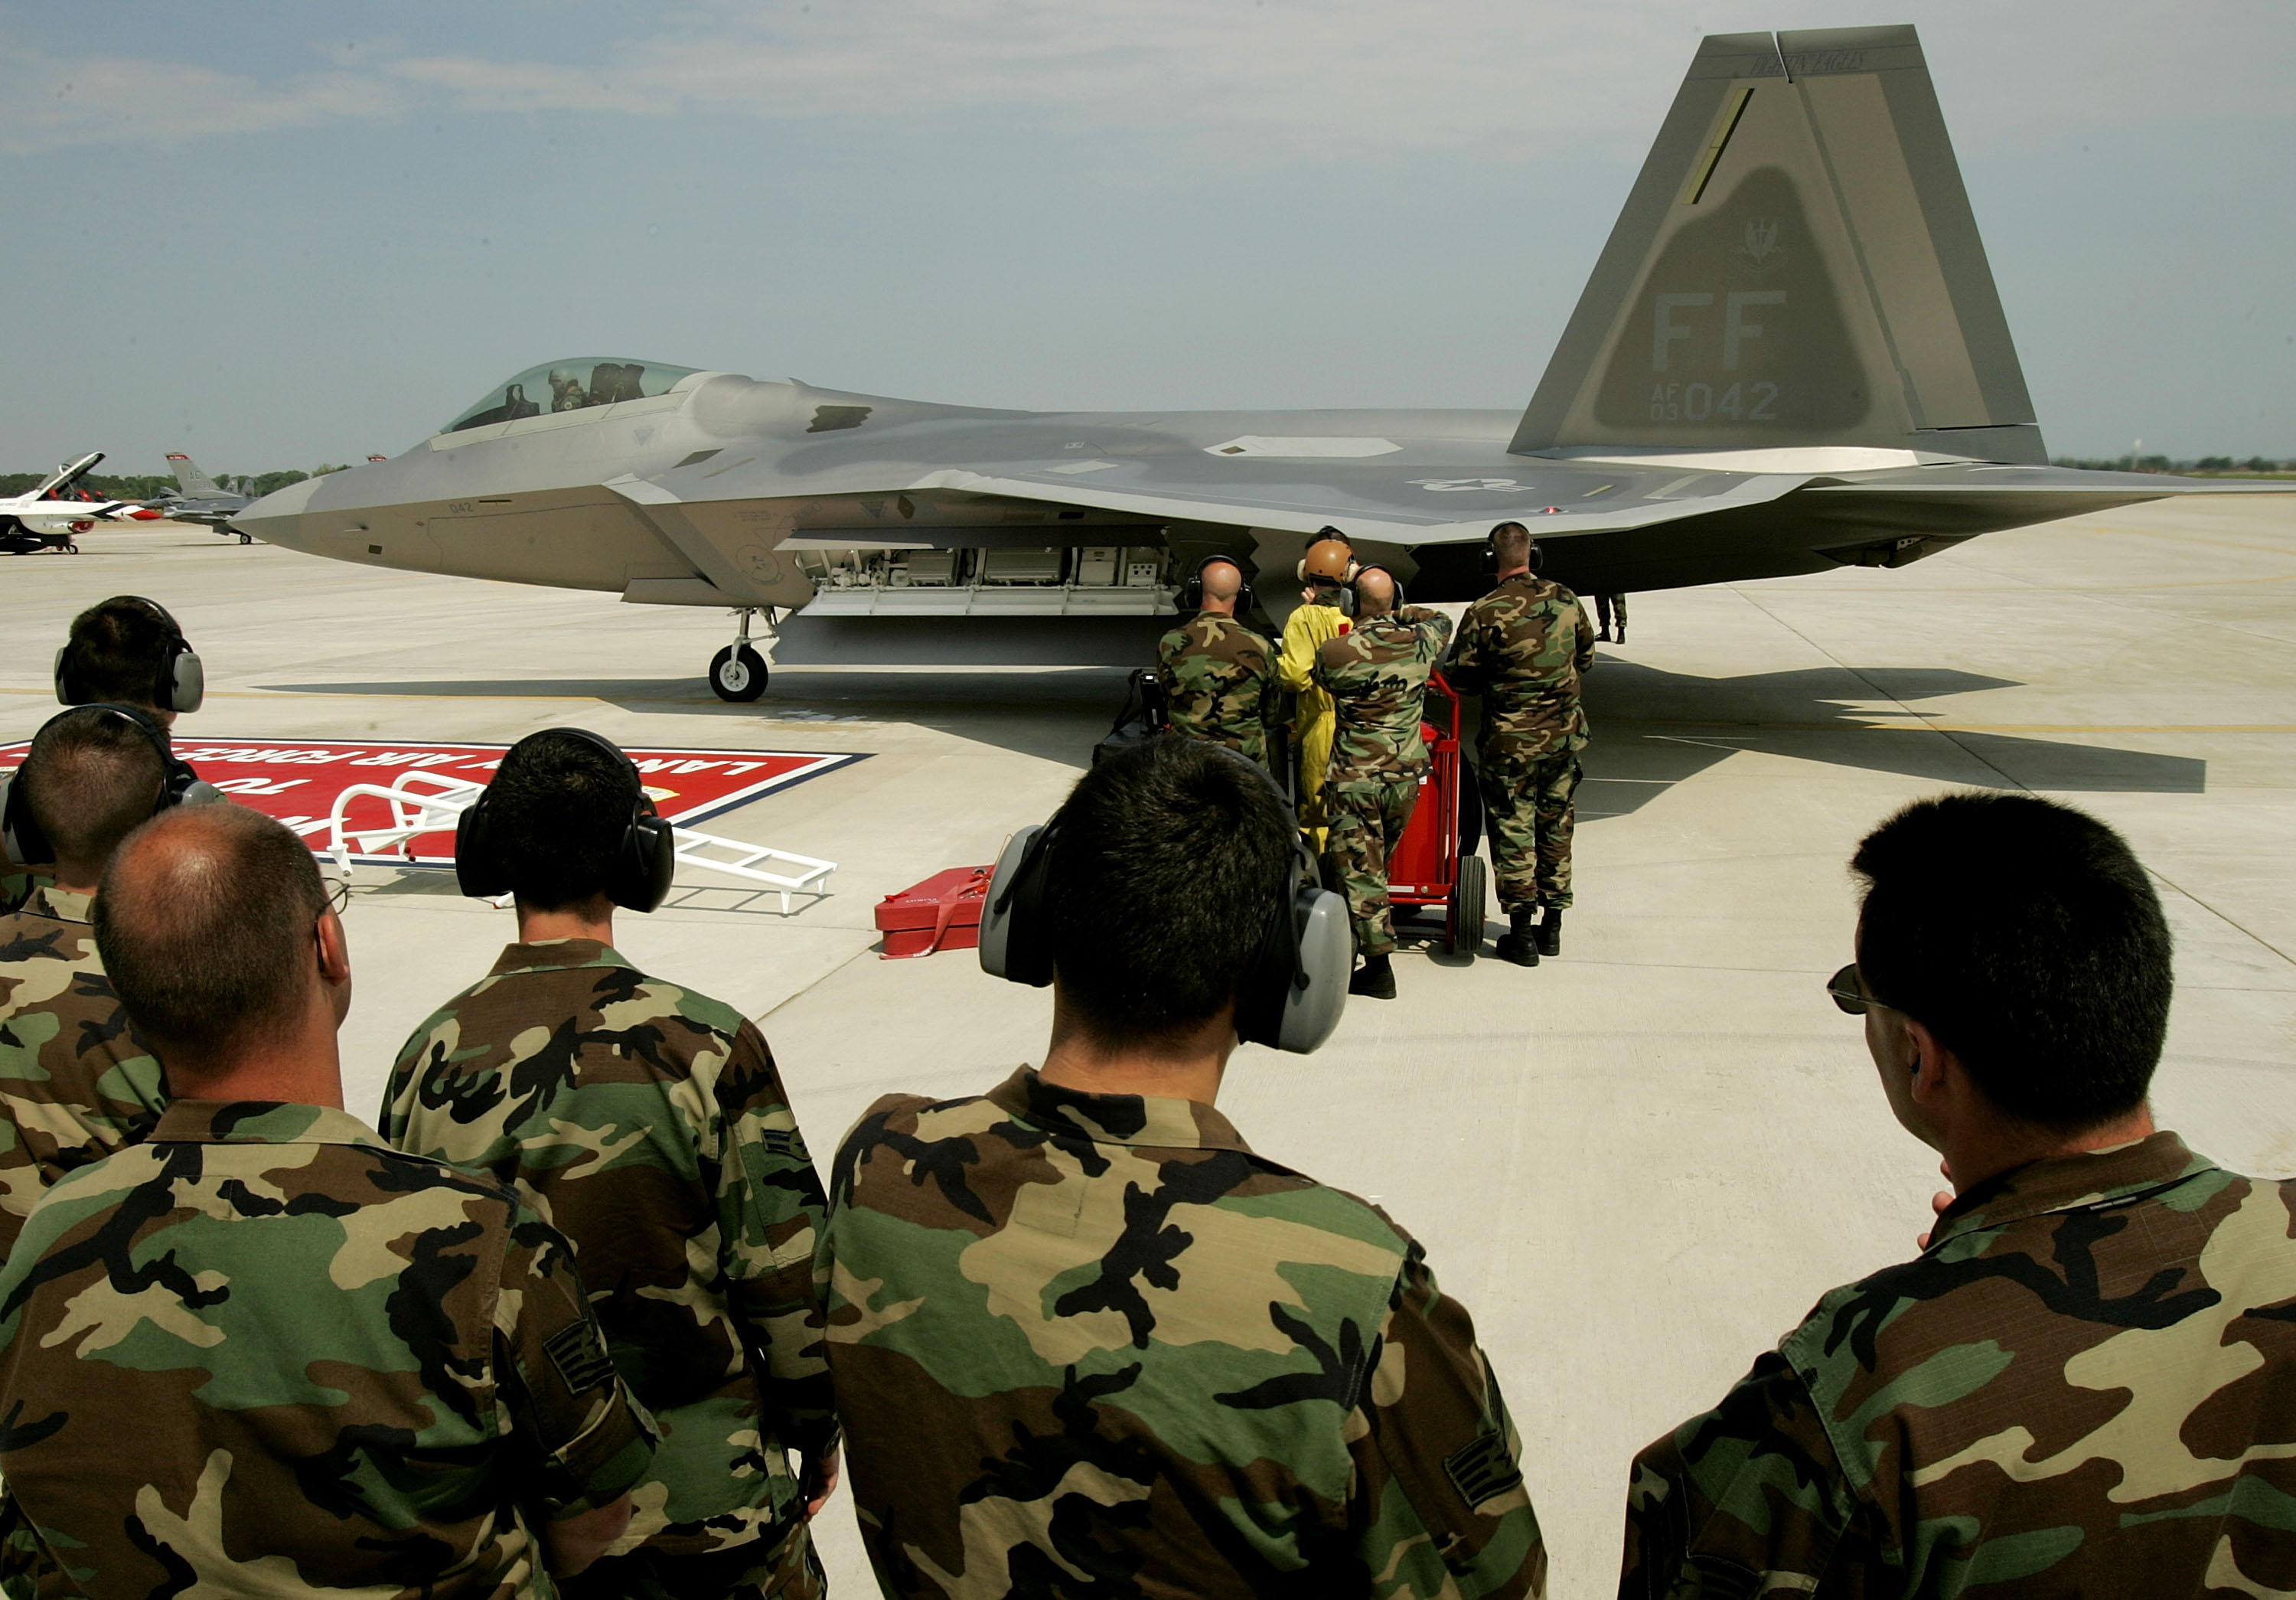 Langley AFB Gets Its First F-22 Fighter